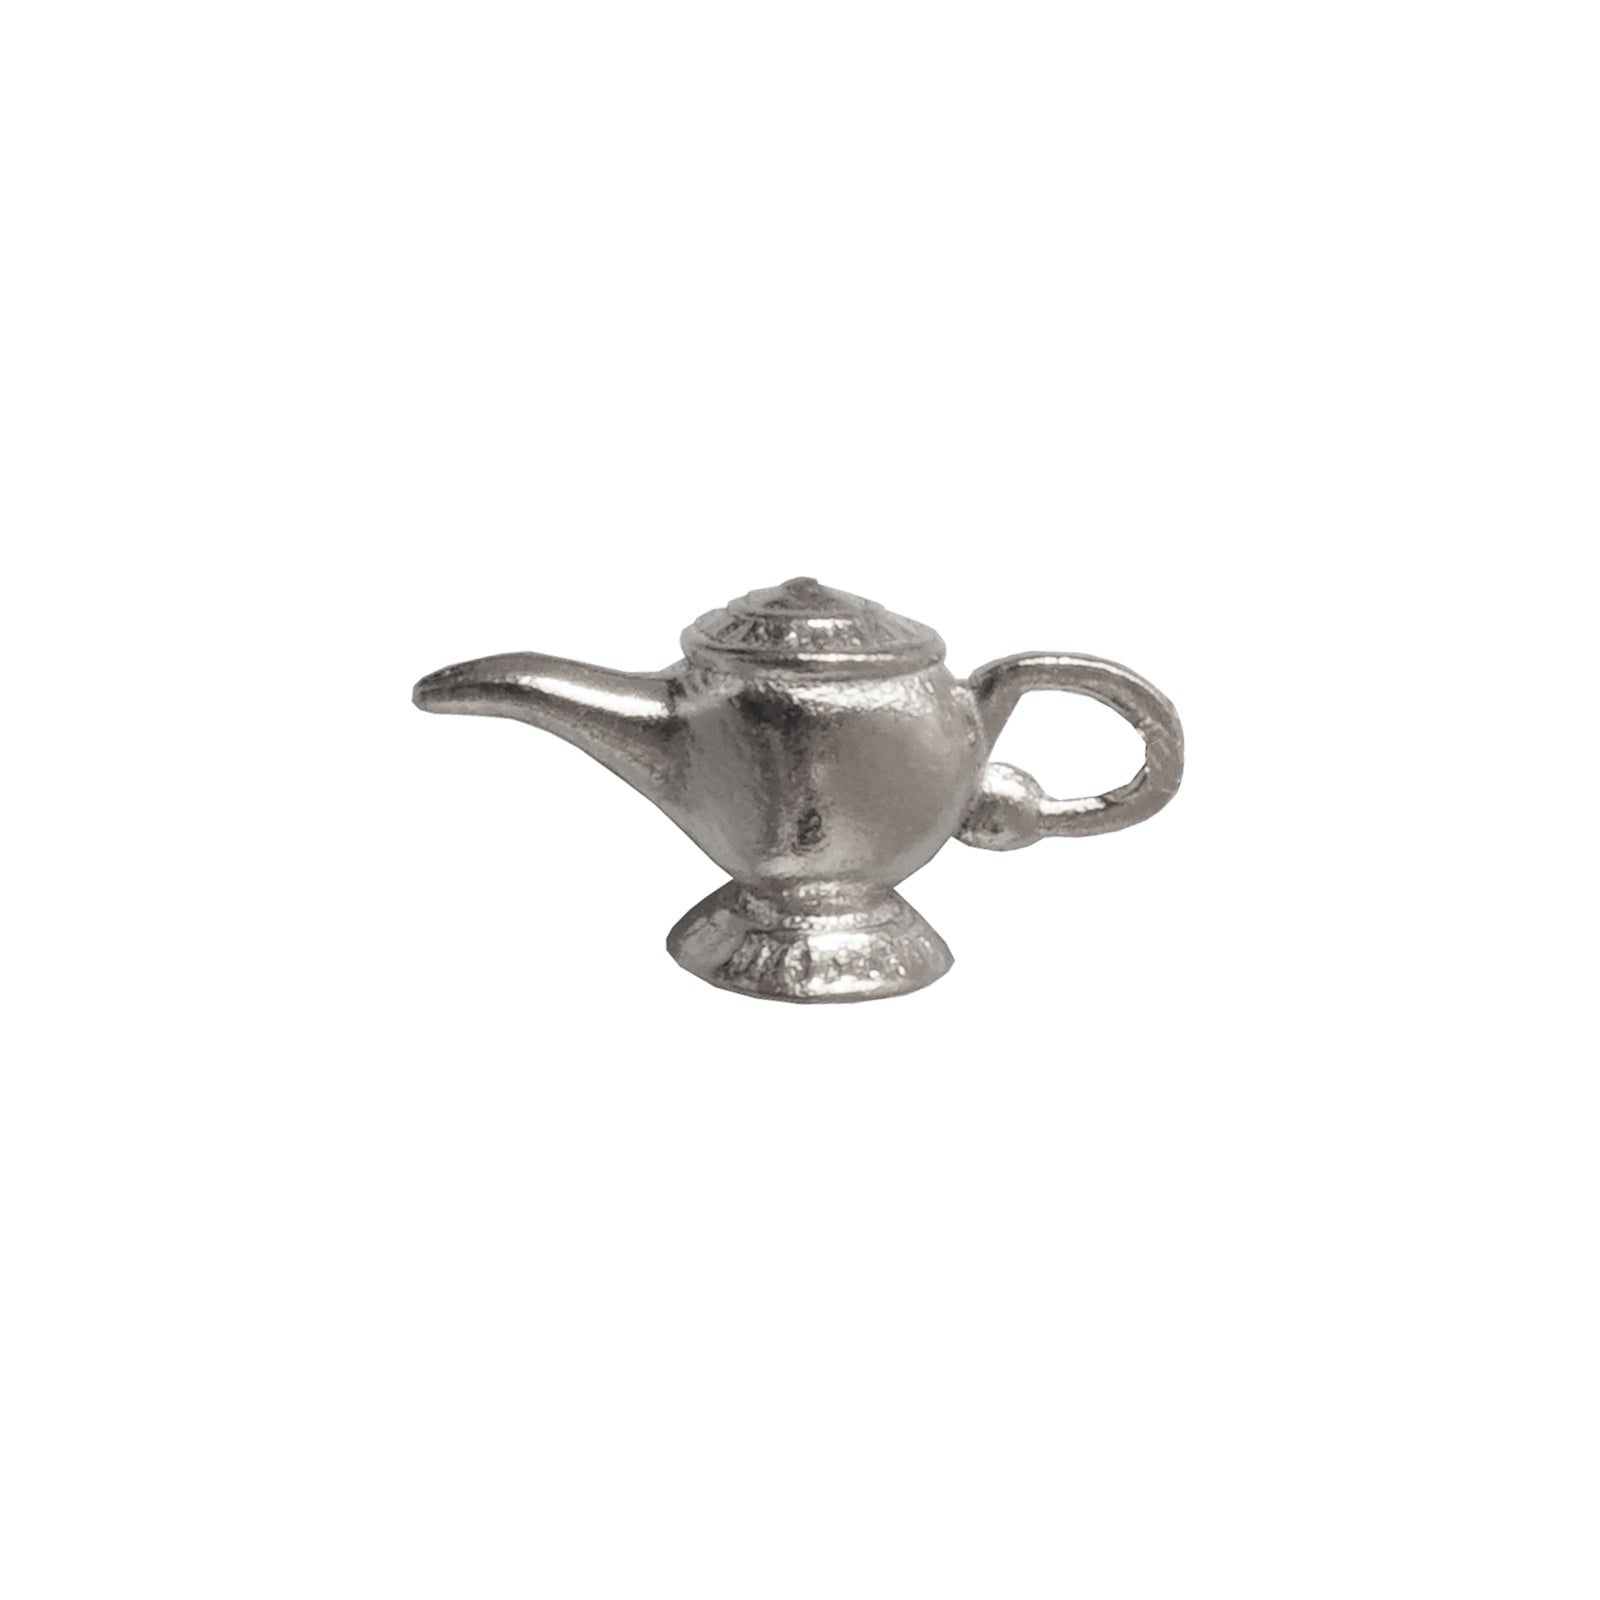 14K Genie Lamp Bottle Charm